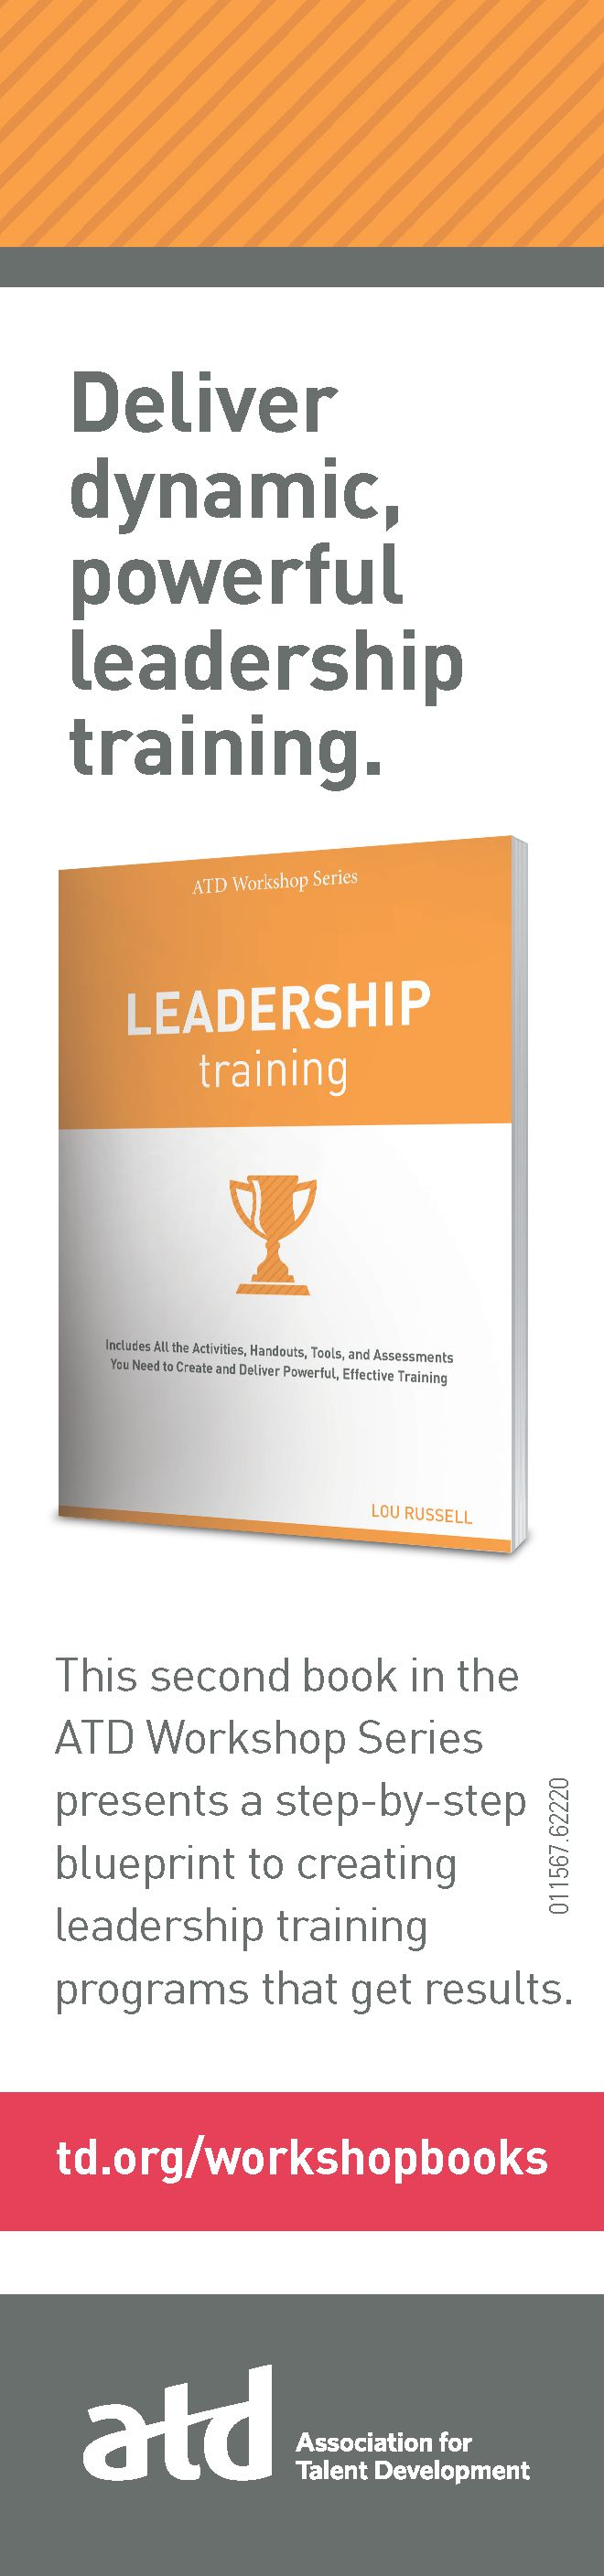 Leadership Training by Lou Russell | This second book in the ATD Workshop Series presents a step-by-step blueprint to creating leadership training programs that get results.